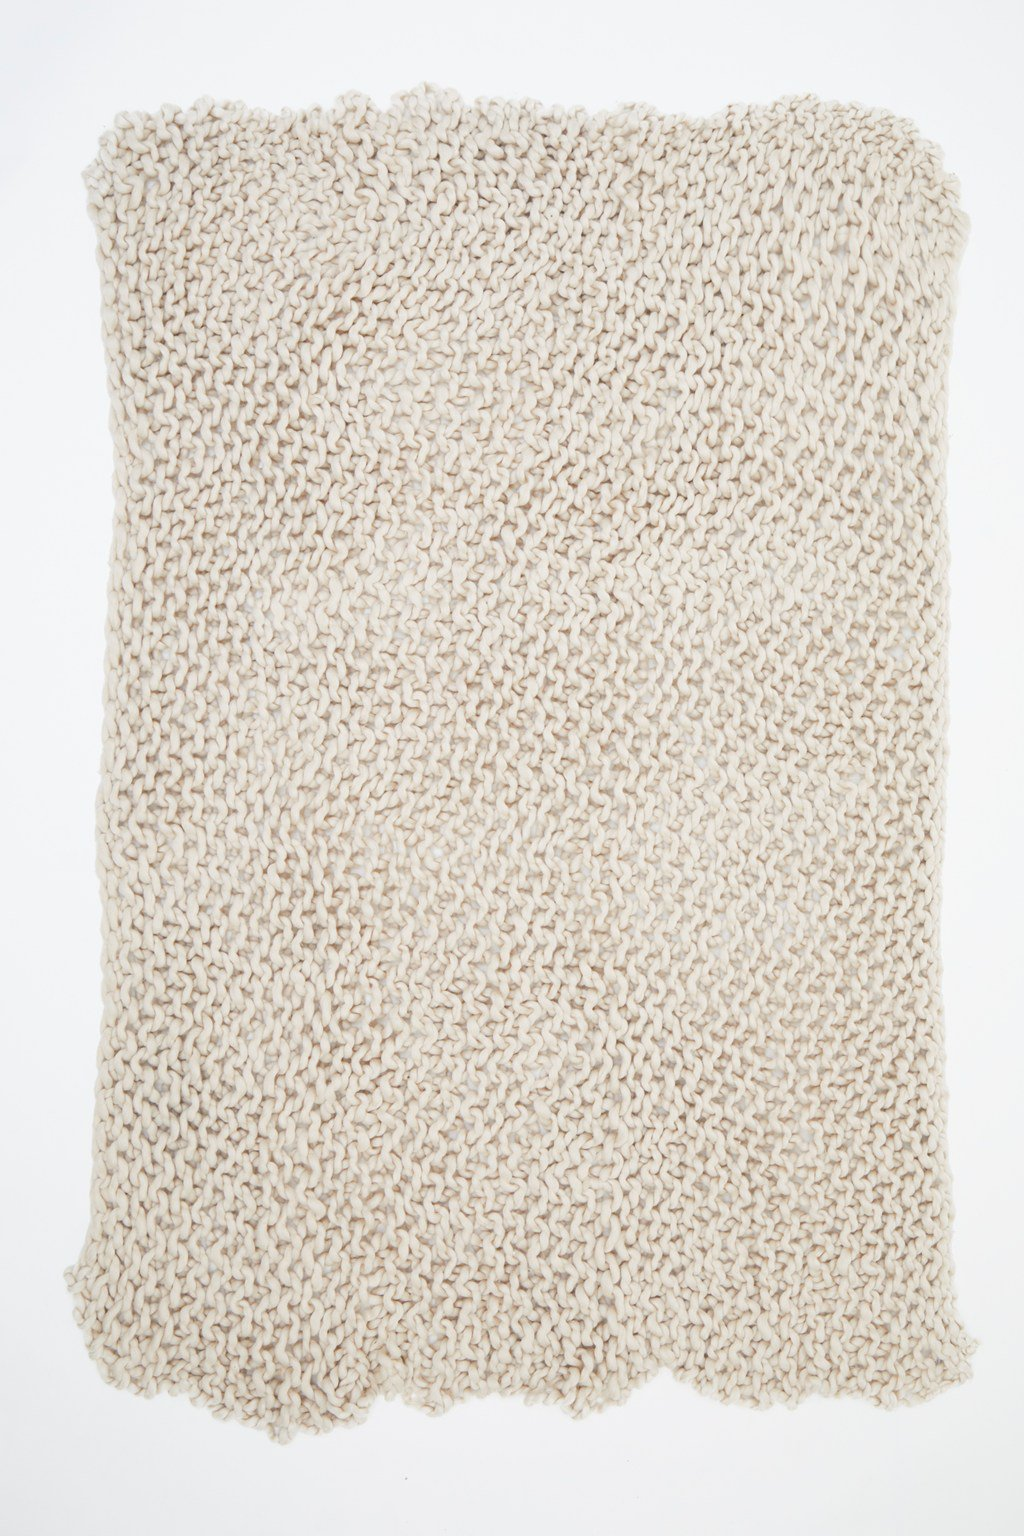 884d7 home cl cream chunky knitted throw80 - WHAT TO BUY NOW - Quelle shock FRENCH CONNECTION